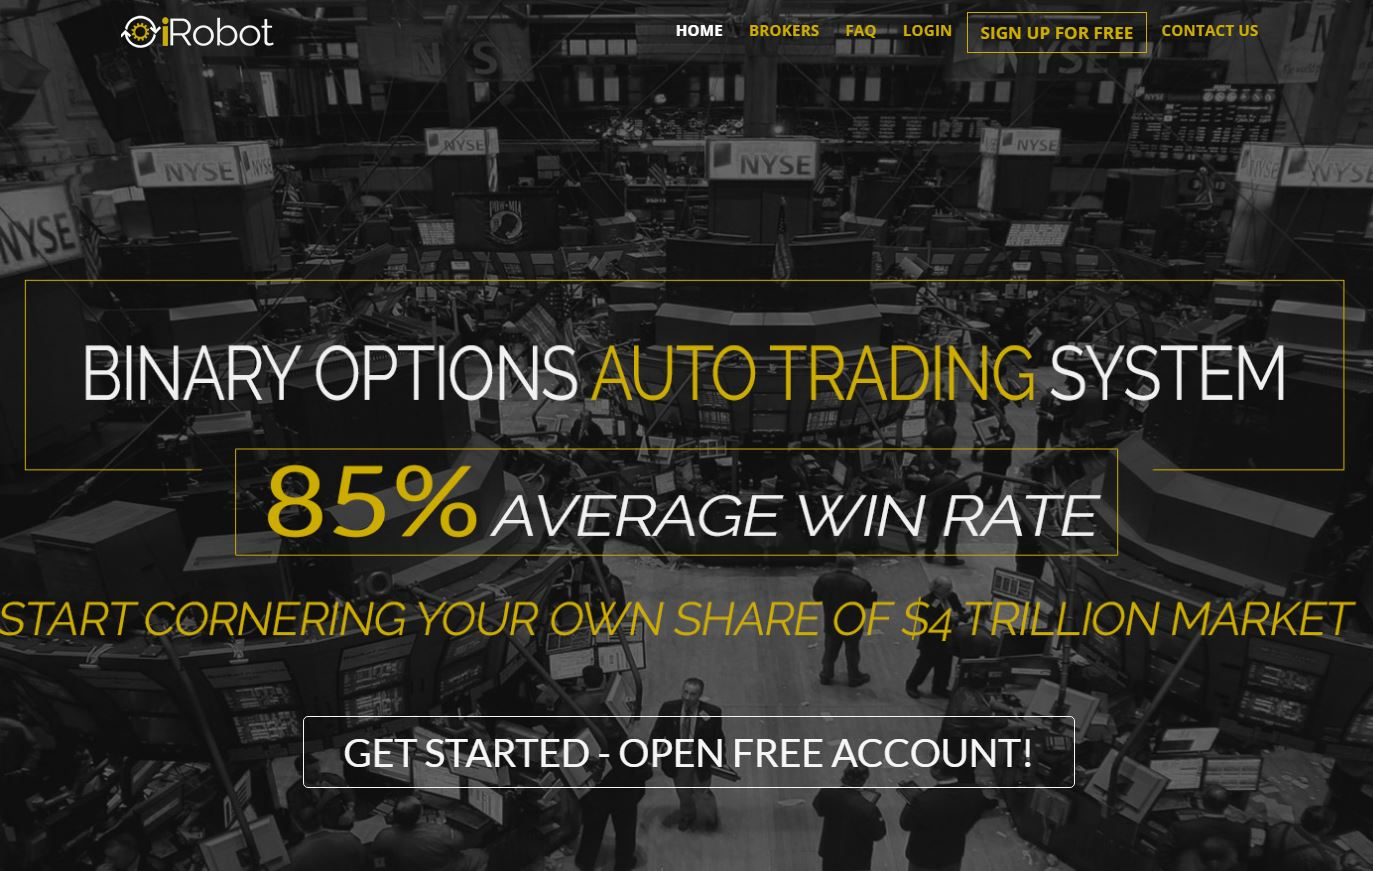 Legit binary options brokers